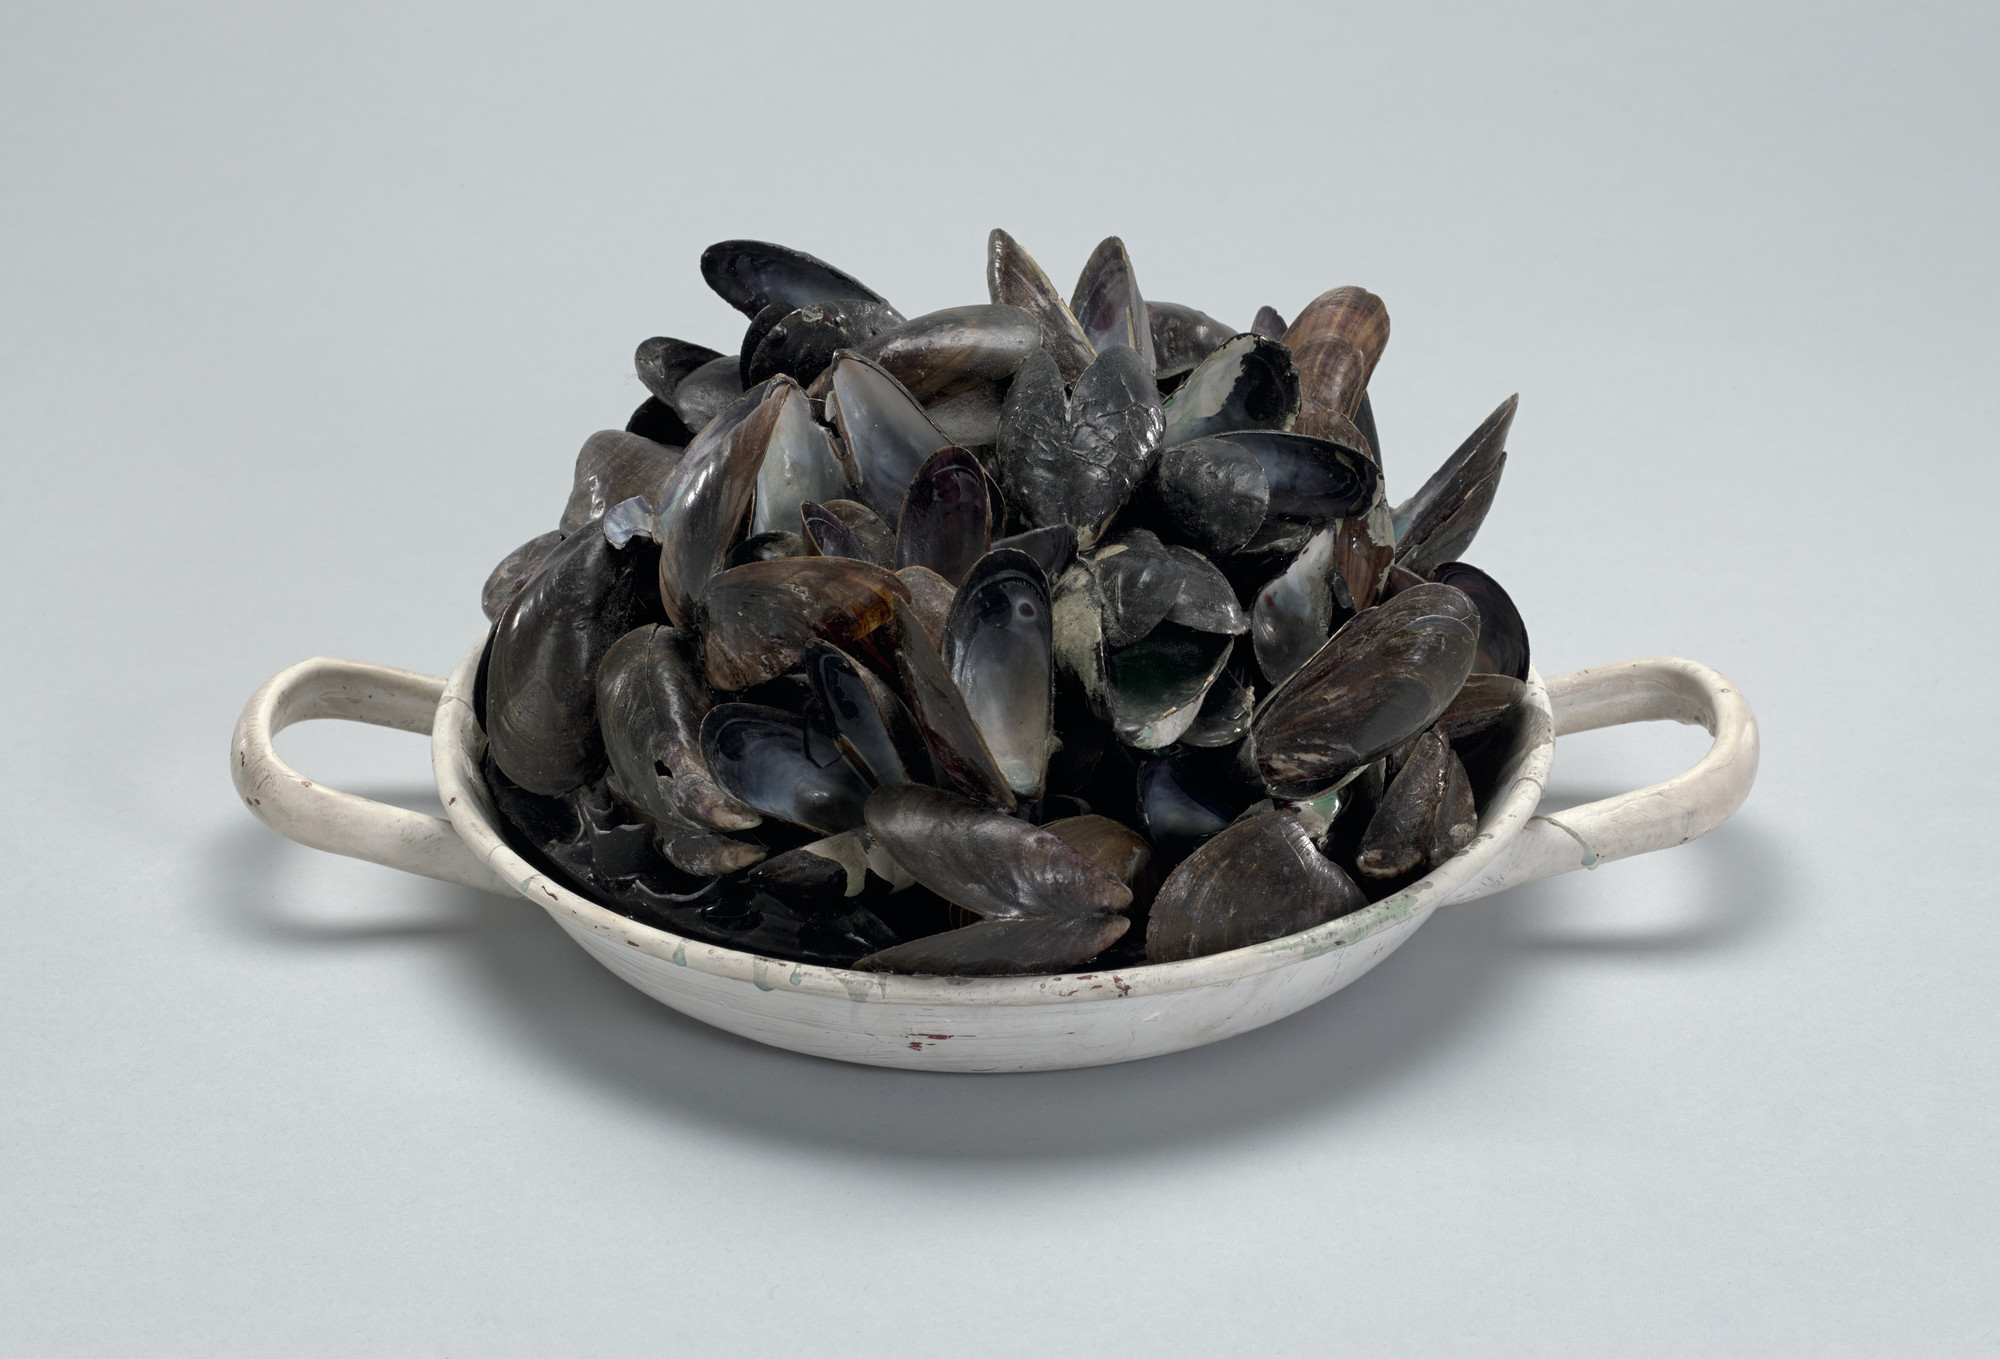 Marcel Broodthaers. Pot of Mussels. 1968